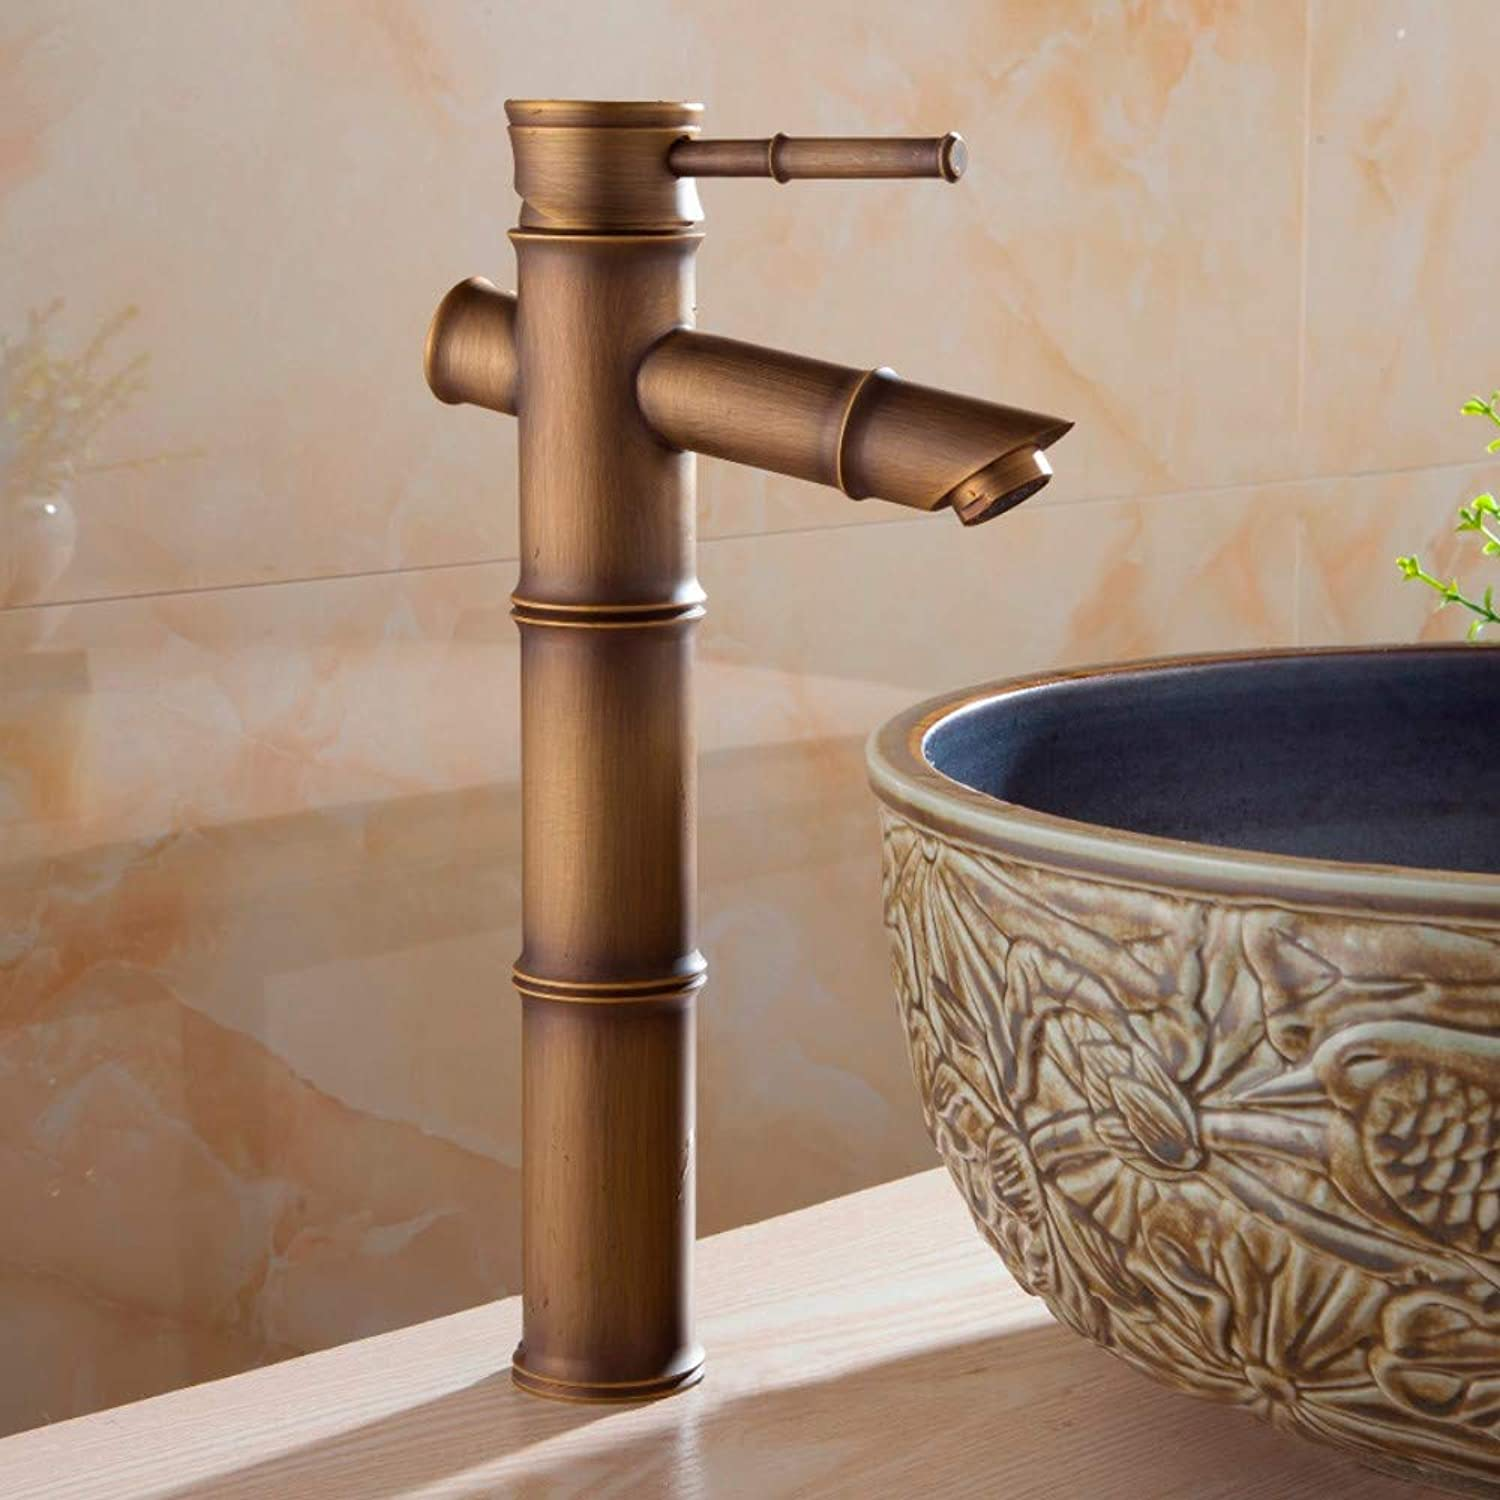 Ayhuir Basin Faucet Antique Brass Bamboo Waterfall Bathroom Sink Faucet Single Lever Deck Bath Toilet Mixer Water Tap Wc Taps